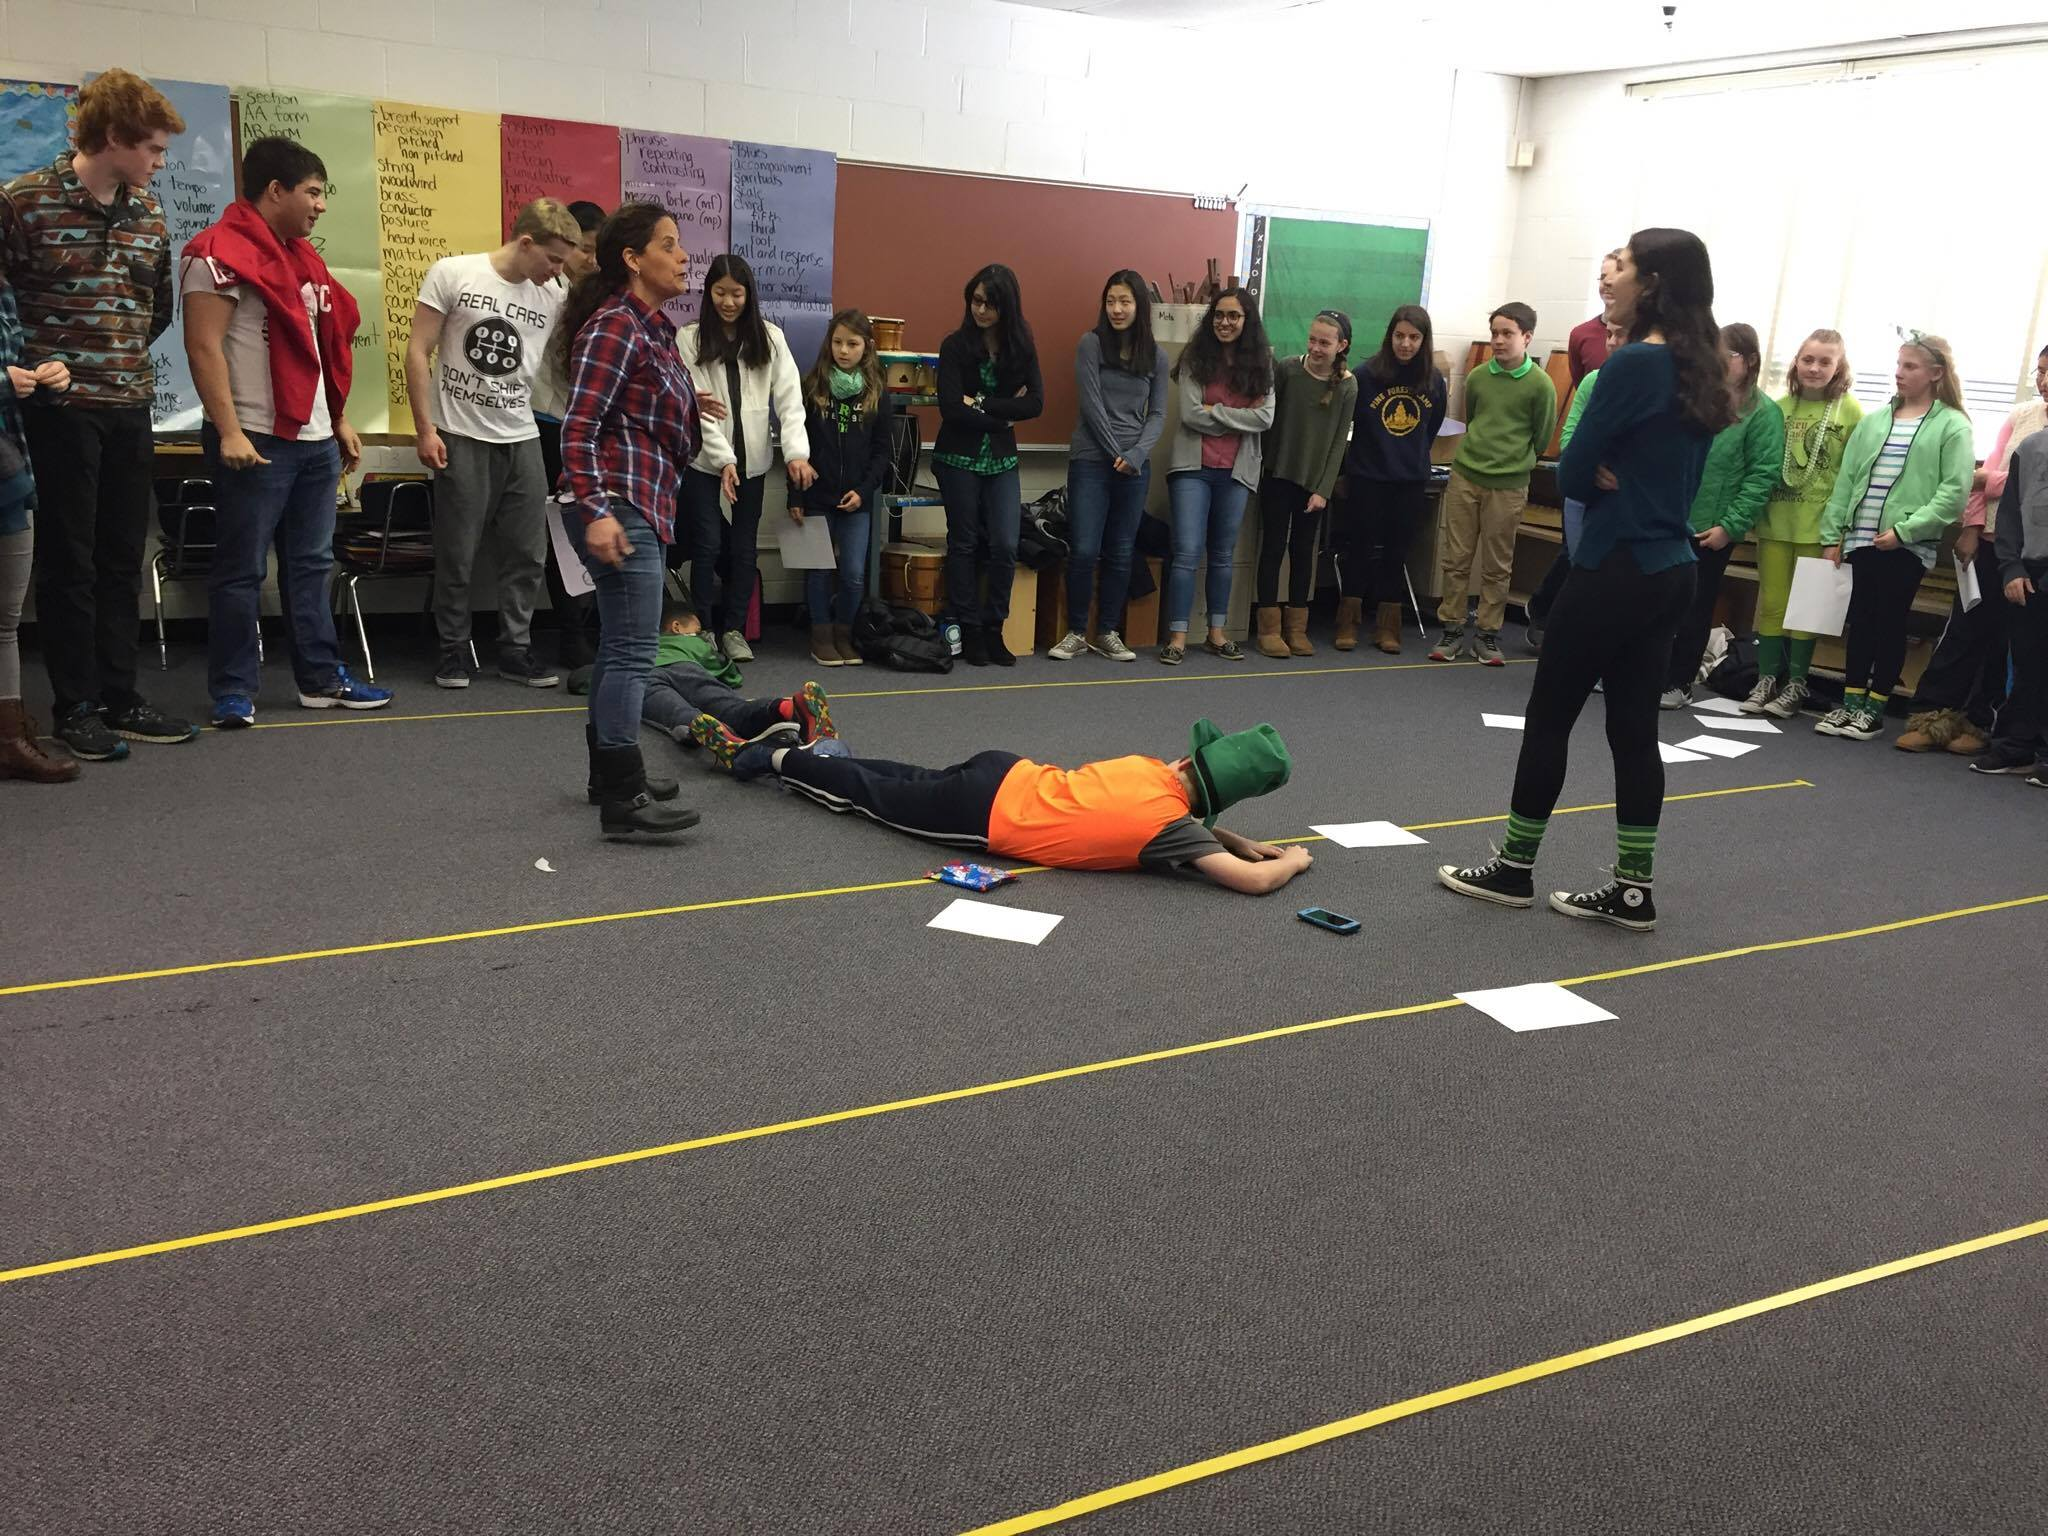 For the diameter activity, 13 students lined up as the diameter of a circle with a circumference of 39 people. Students discovered that the diameter went around the circle approximately three times, which is close to pi. Photo by Pearl Sun.